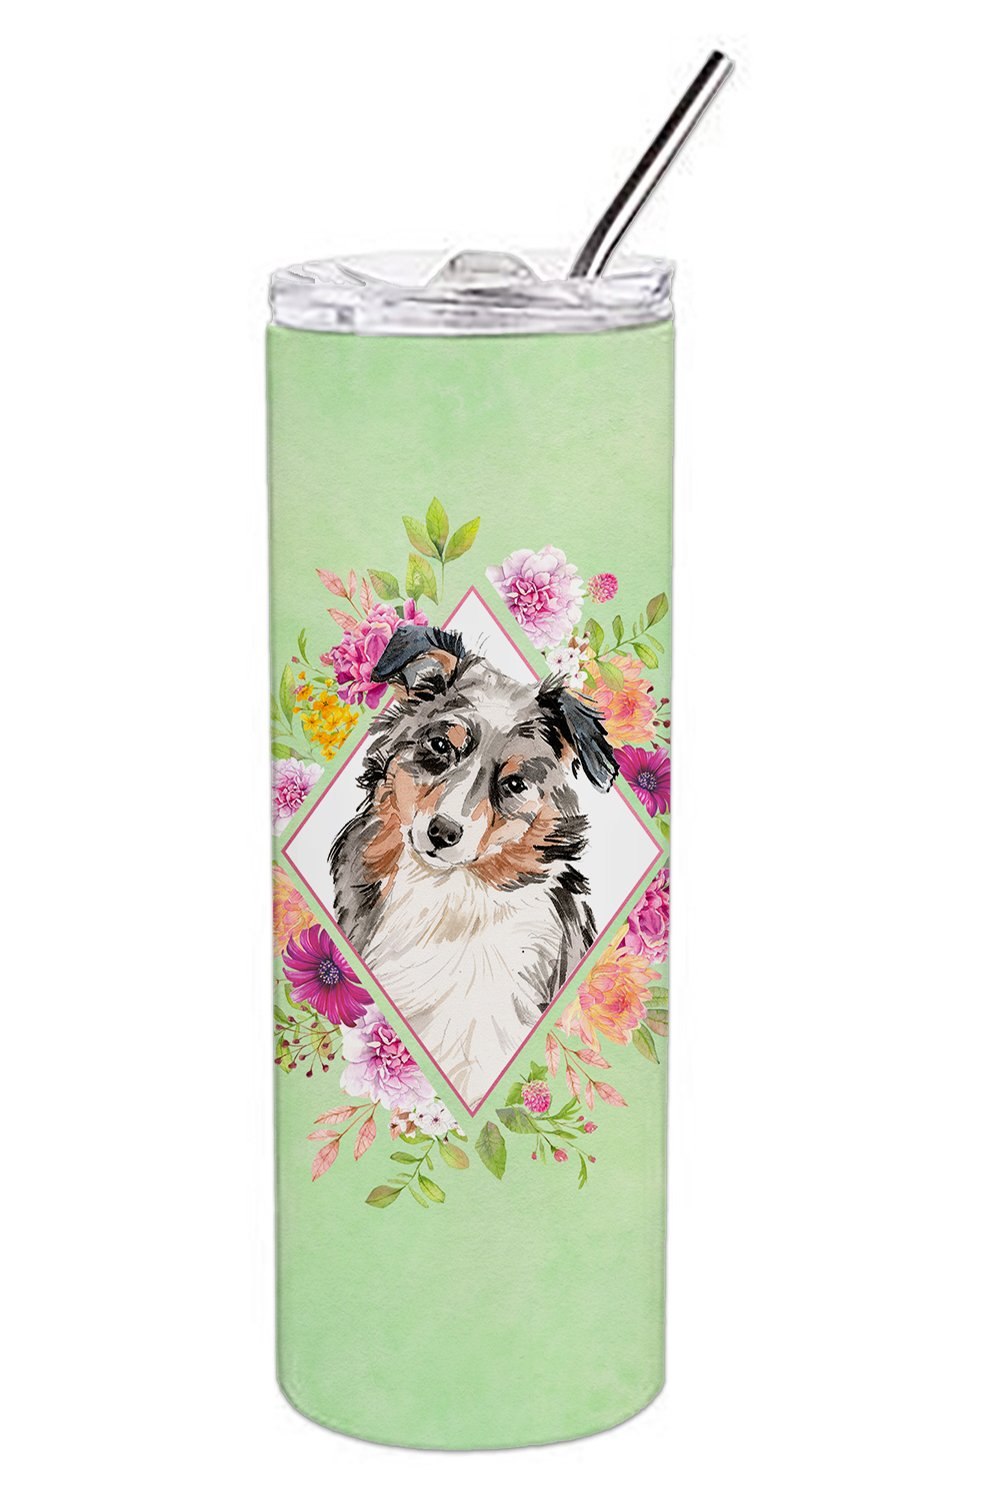 Australian Shepherd Green Flowers Double Walled Stainless Steel 20 oz Skinny Tumbler CK4427TBL20 by Caroline's Treasures